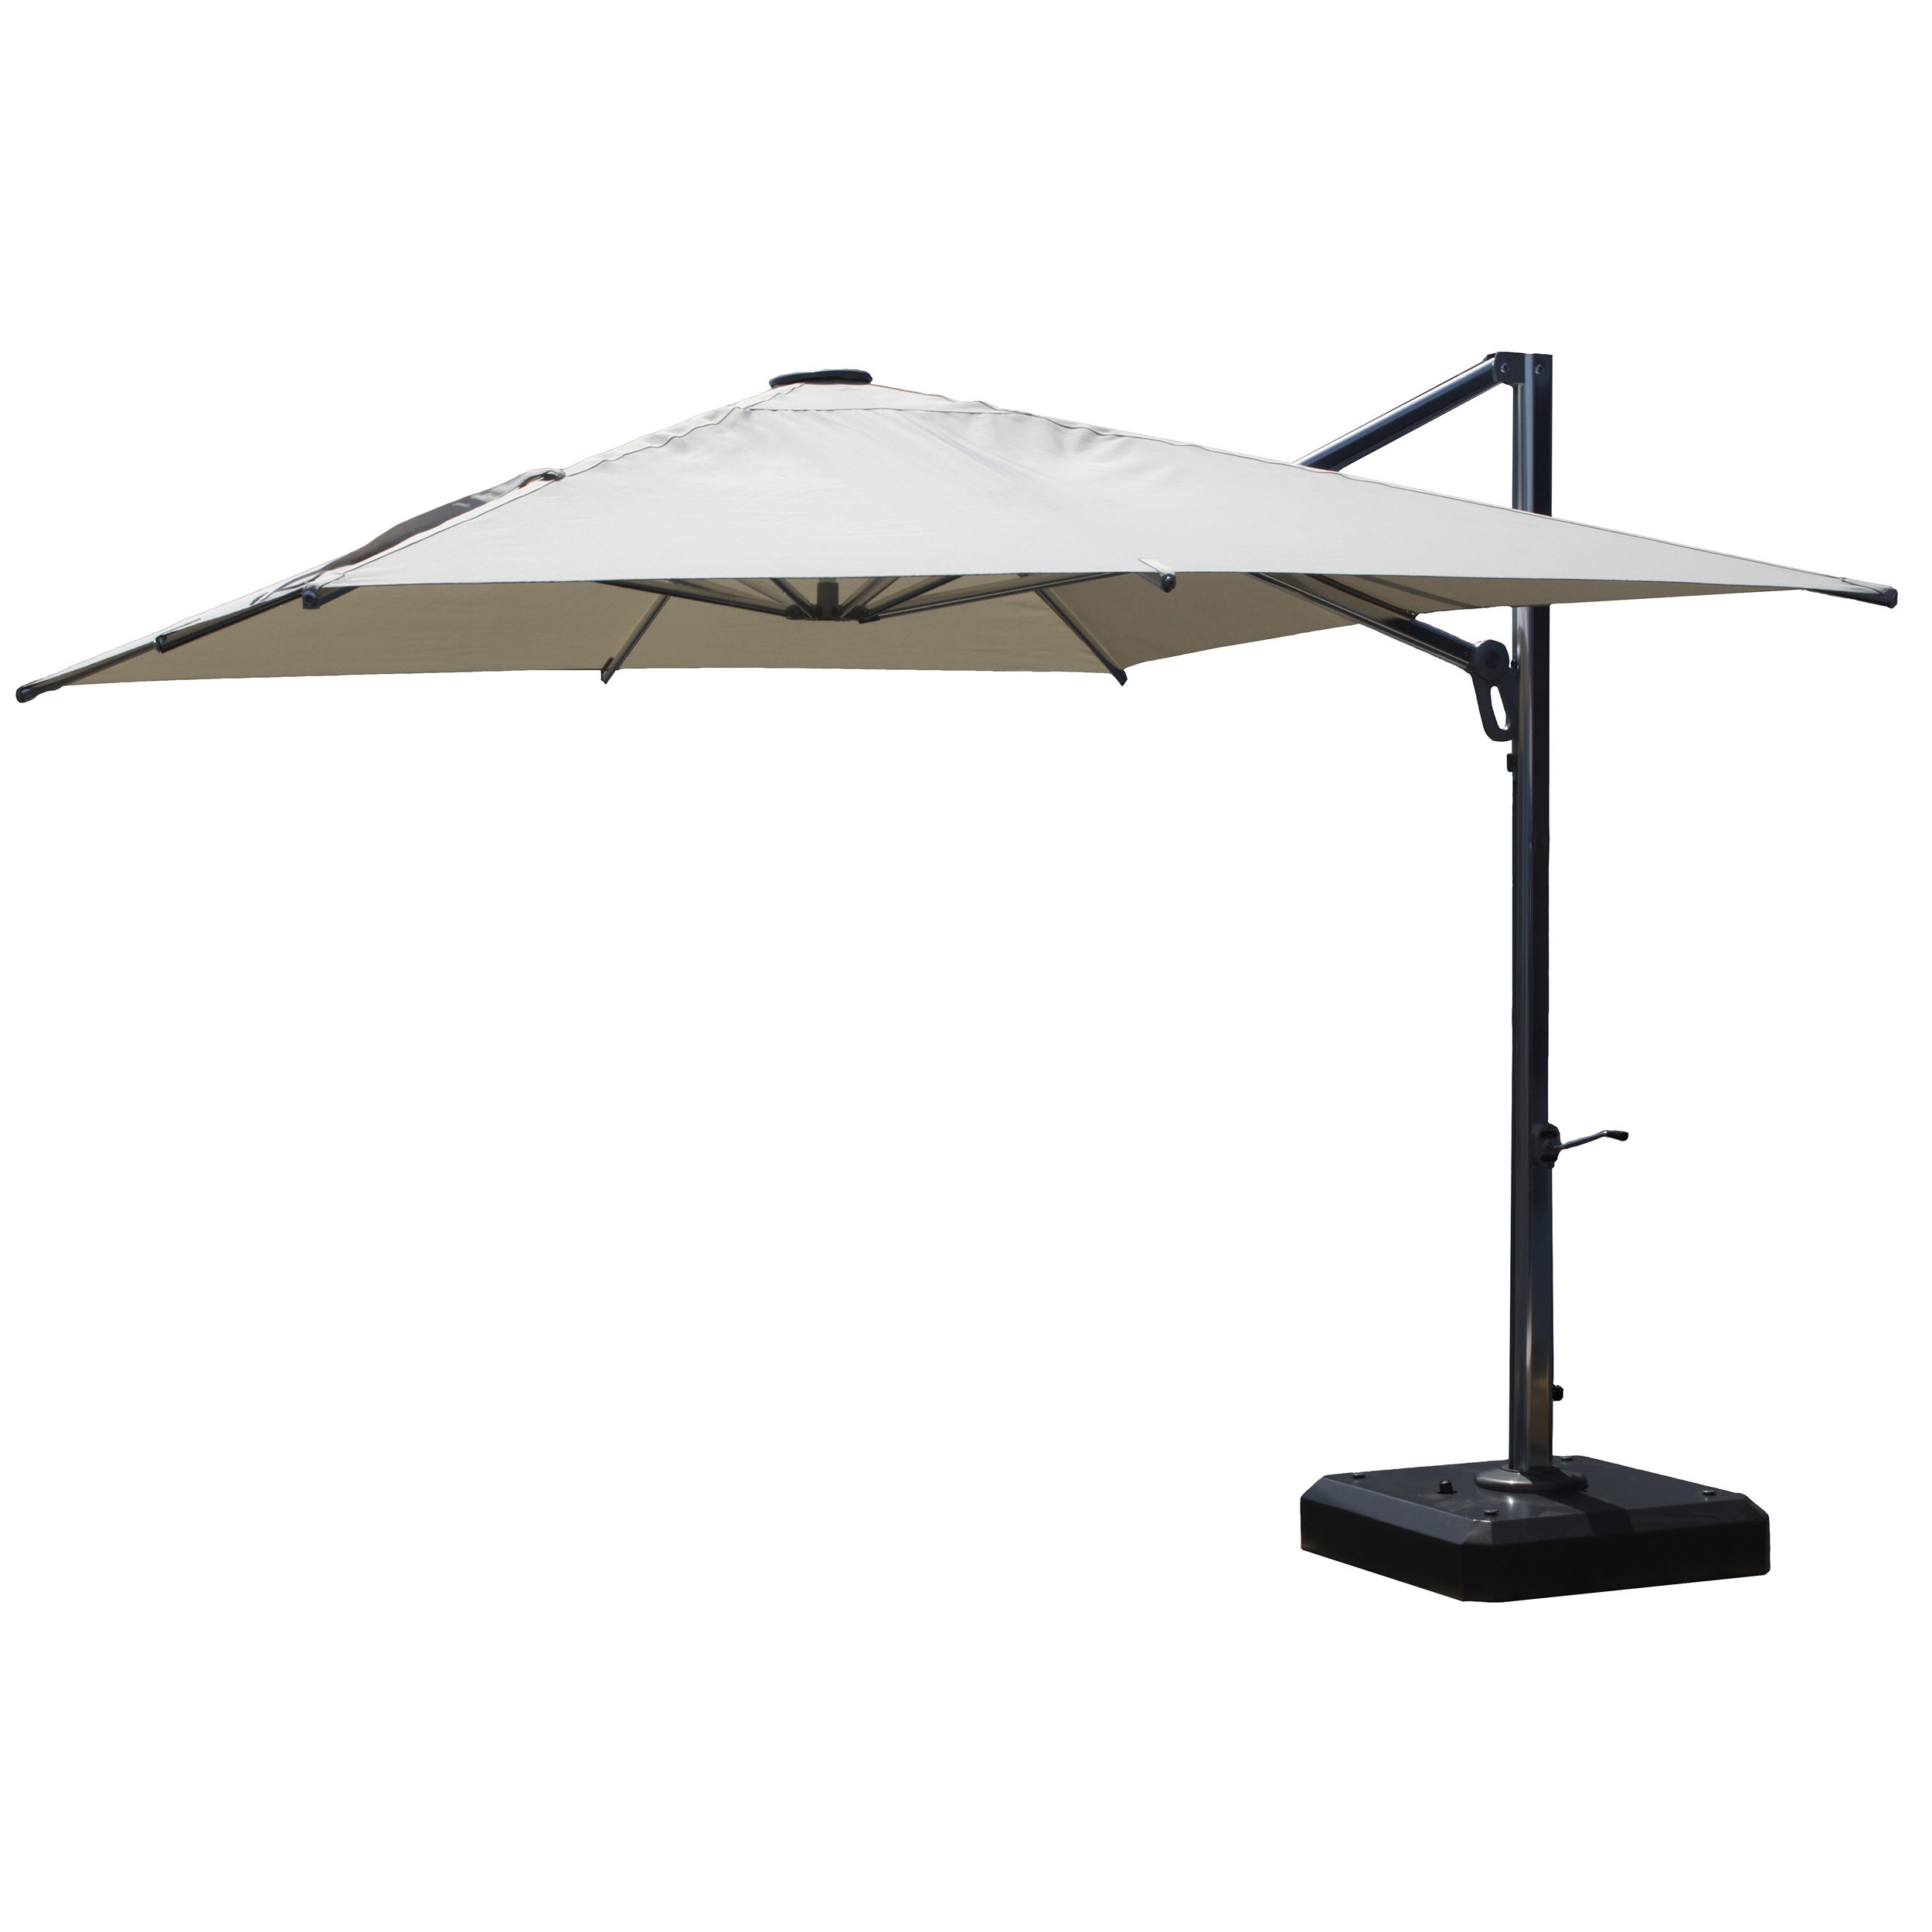 10' Square Cantilever Umbrella With Widely Used Emely Cantilever Umbrellas (Gallery 3 of 20)